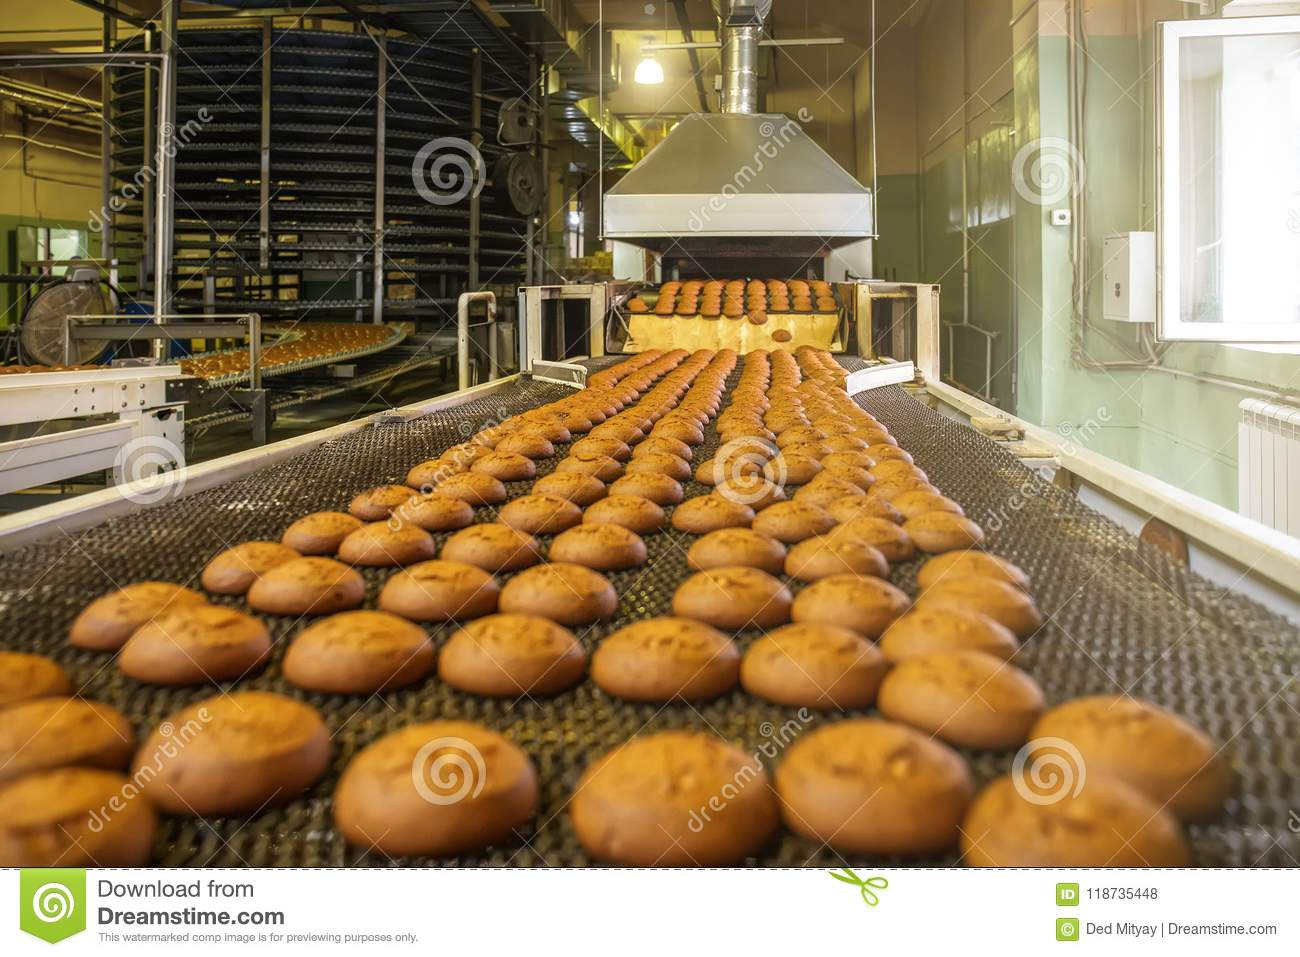 Automatic bakery production line with sweet cookies on conveyor belt equipment machinery in confectionary factory workshop